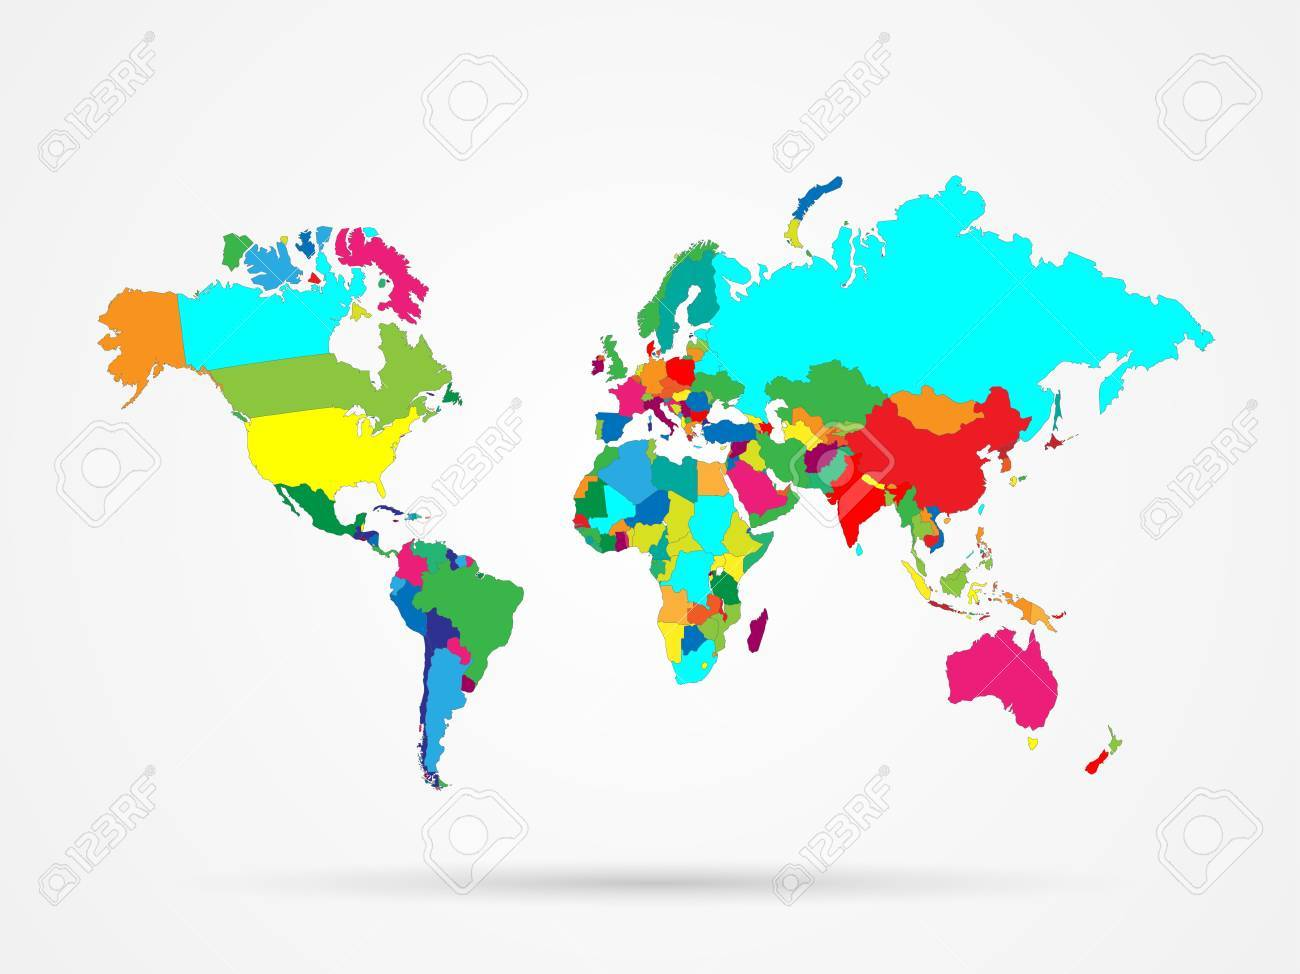 Illustration of a colorful world map isolated on a white background illustration of a colorful world map isolated on a white background stock vector 39520655 gumiabroncs Gallery